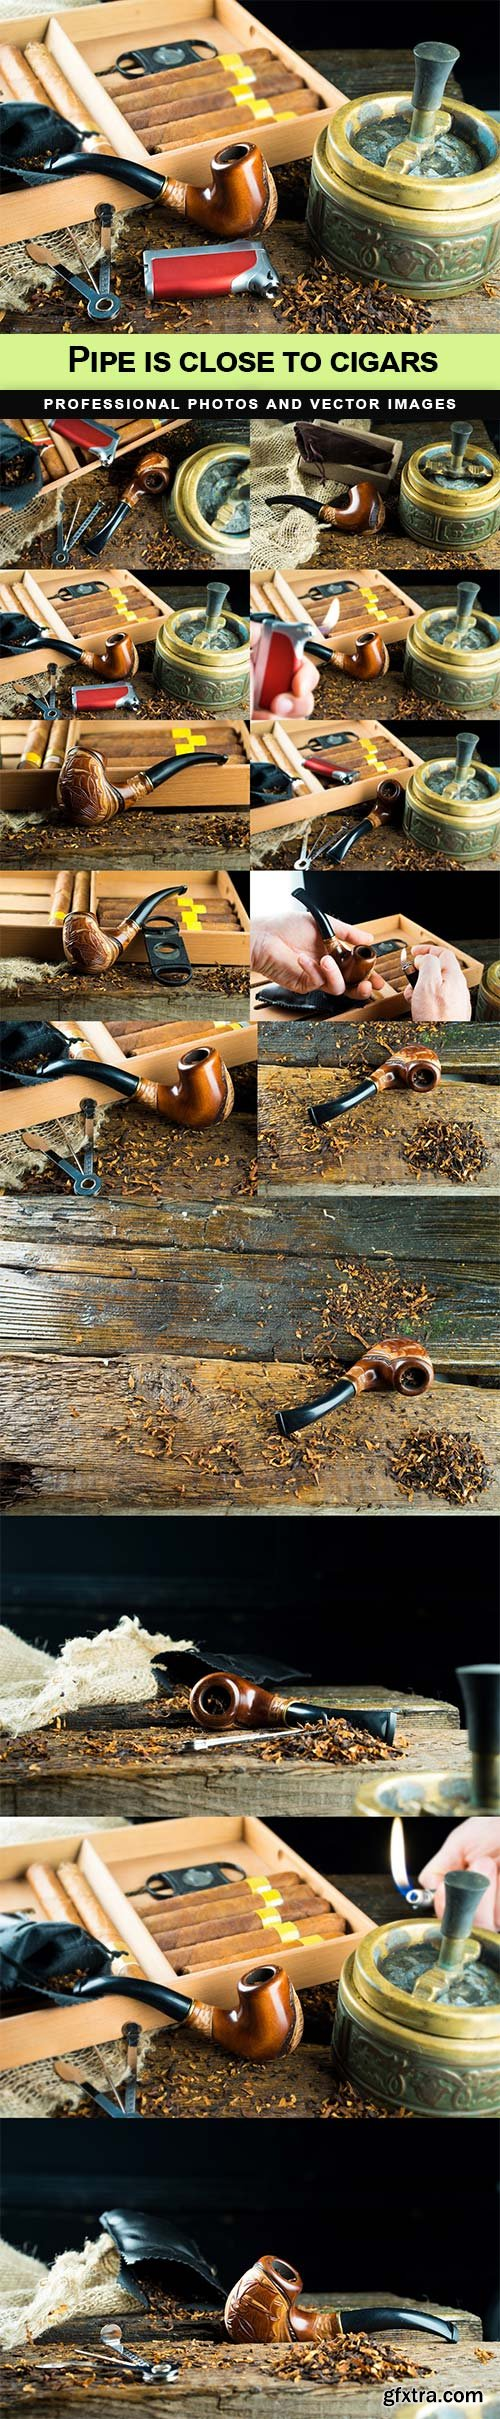 Pipe is close to cigars